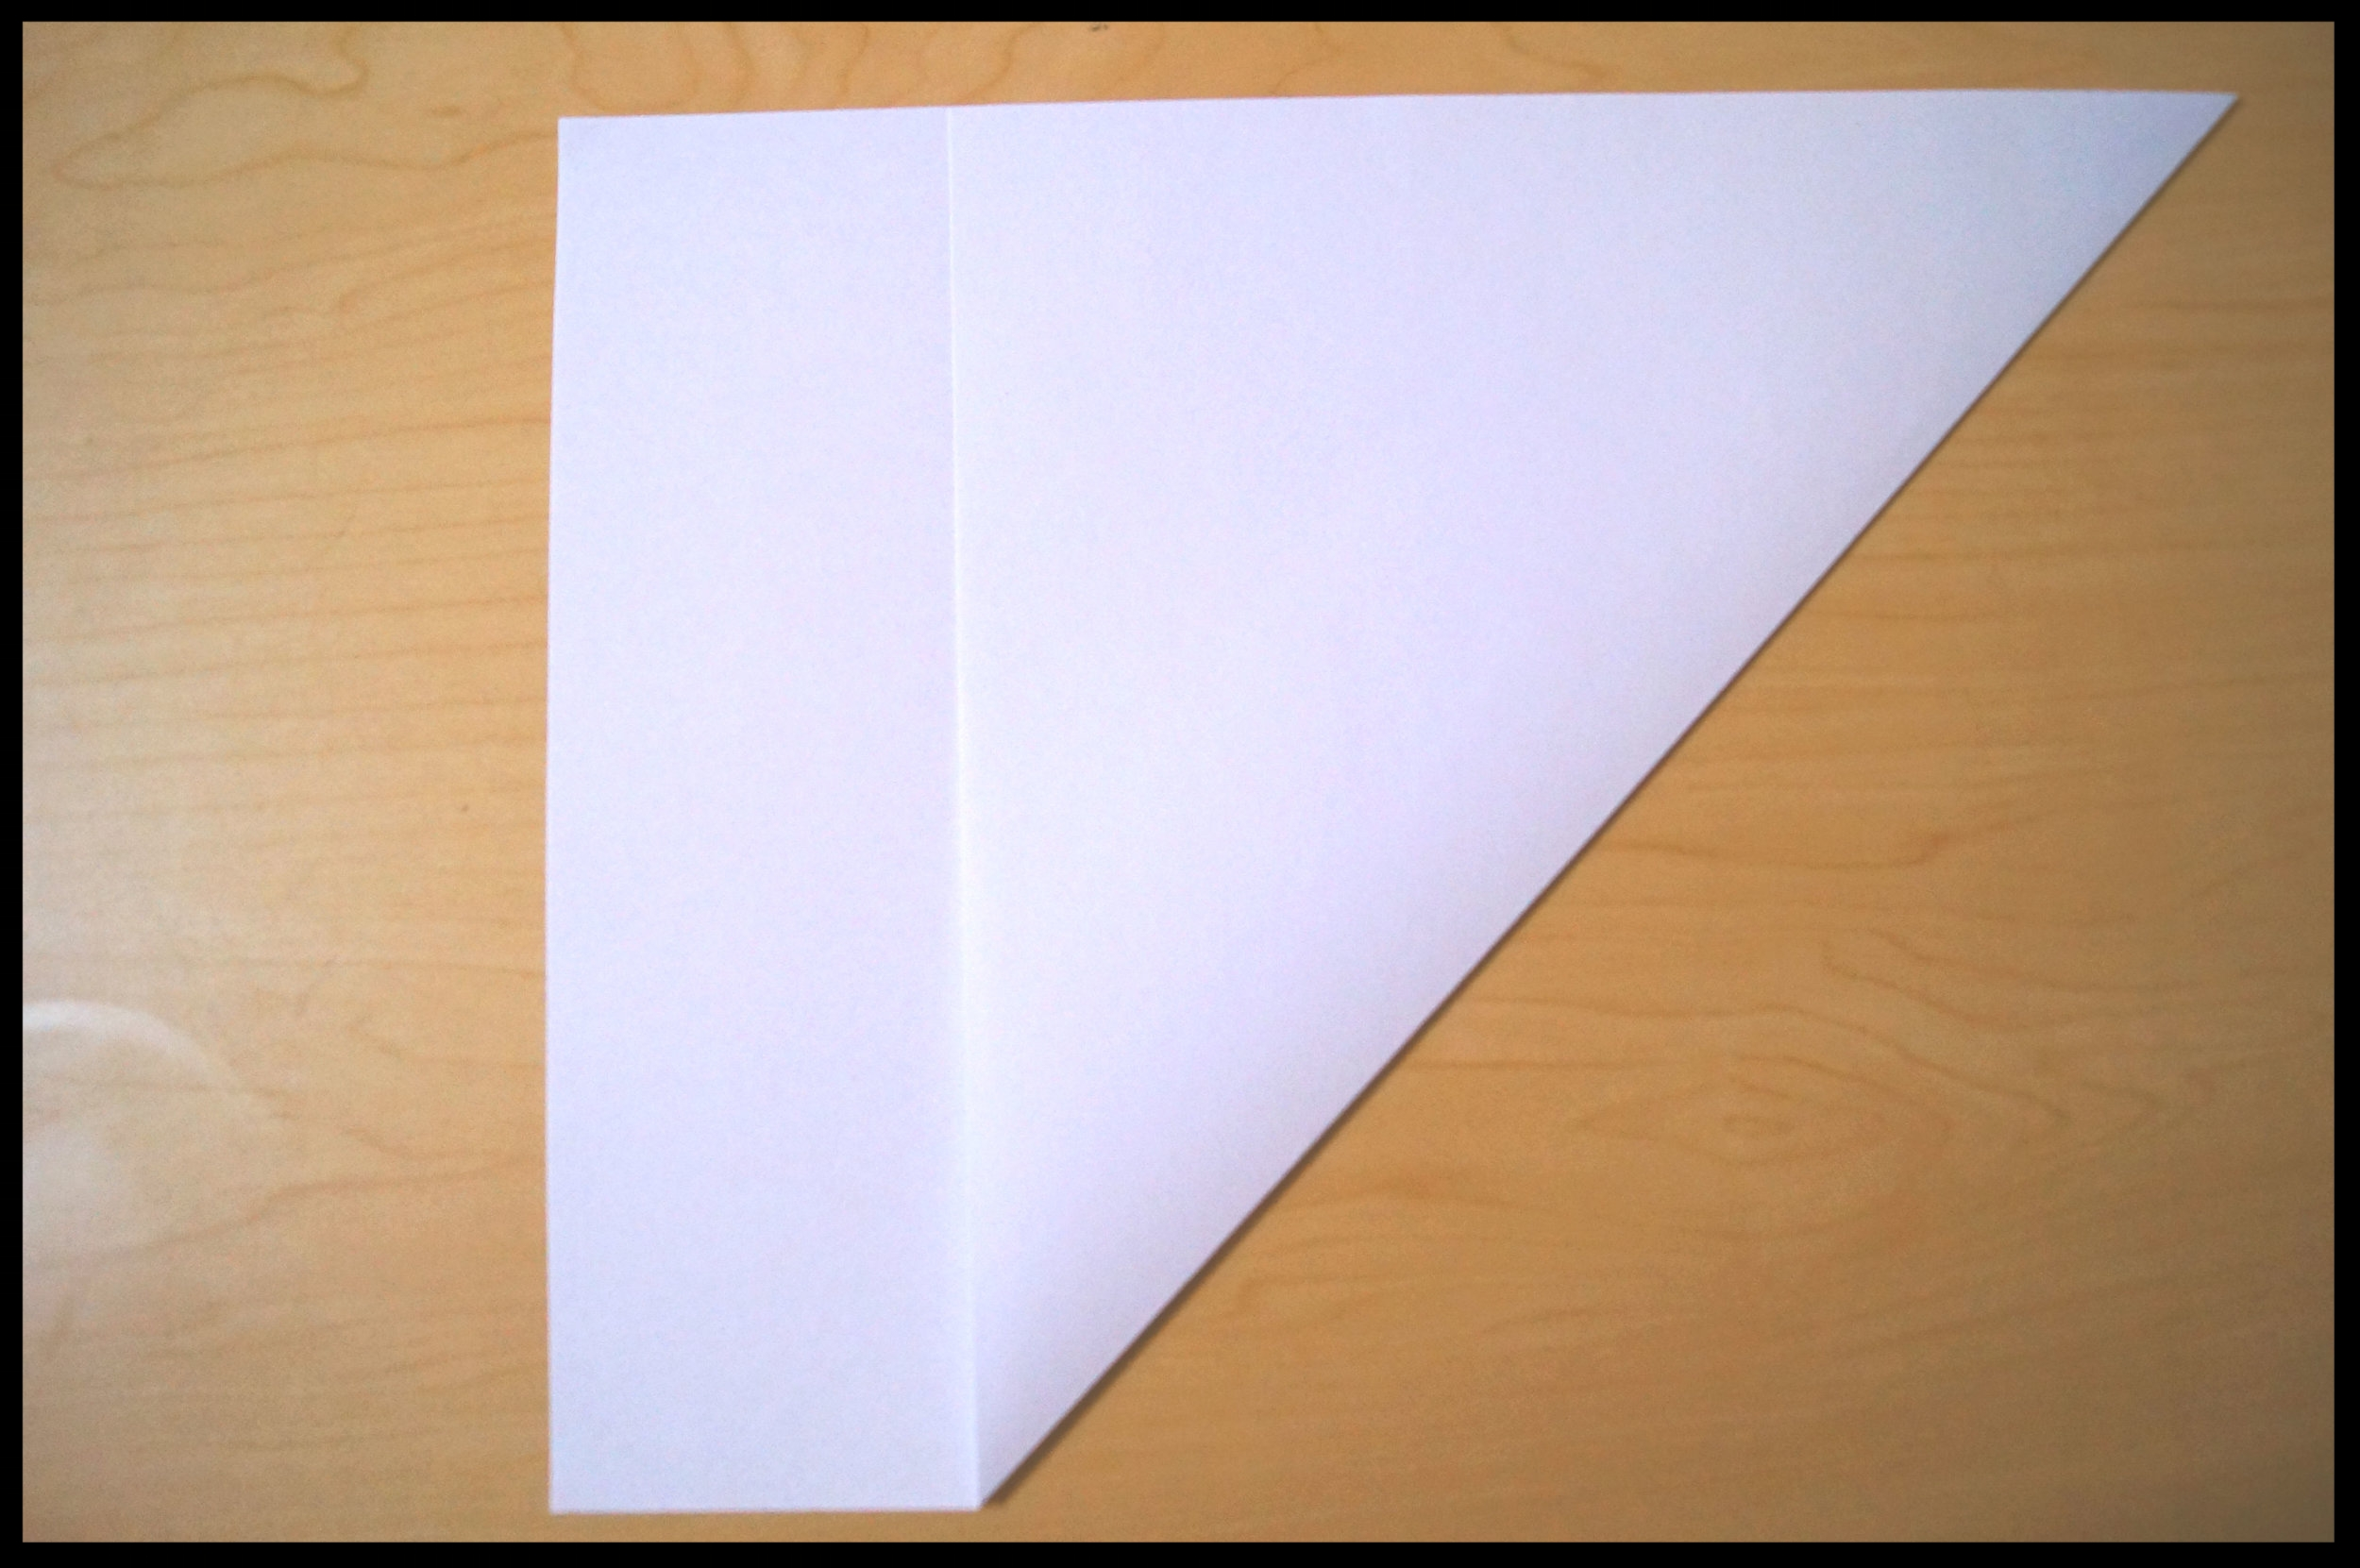 2.    Take the bottom right corner and fold it up diagonally to create a triangle. There will be a small strip of extra paper to the left of the triangle.